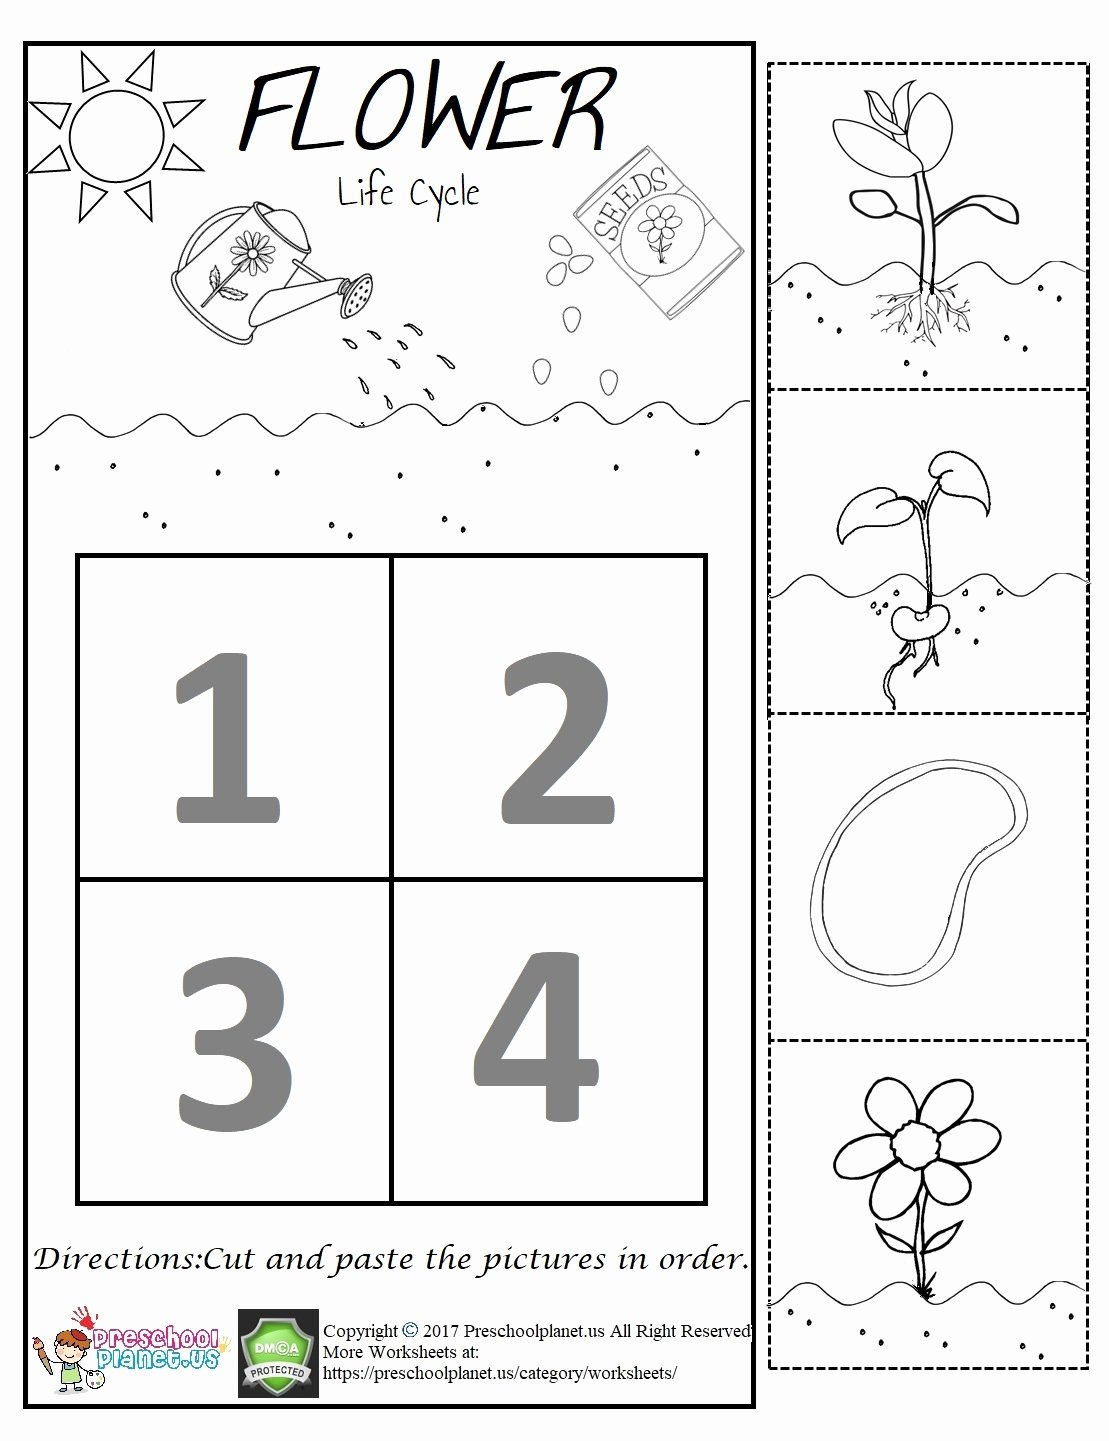 Plant Worksheets for Preschoolers top Flower Life Cycle Worksheet – Preschoolplanet